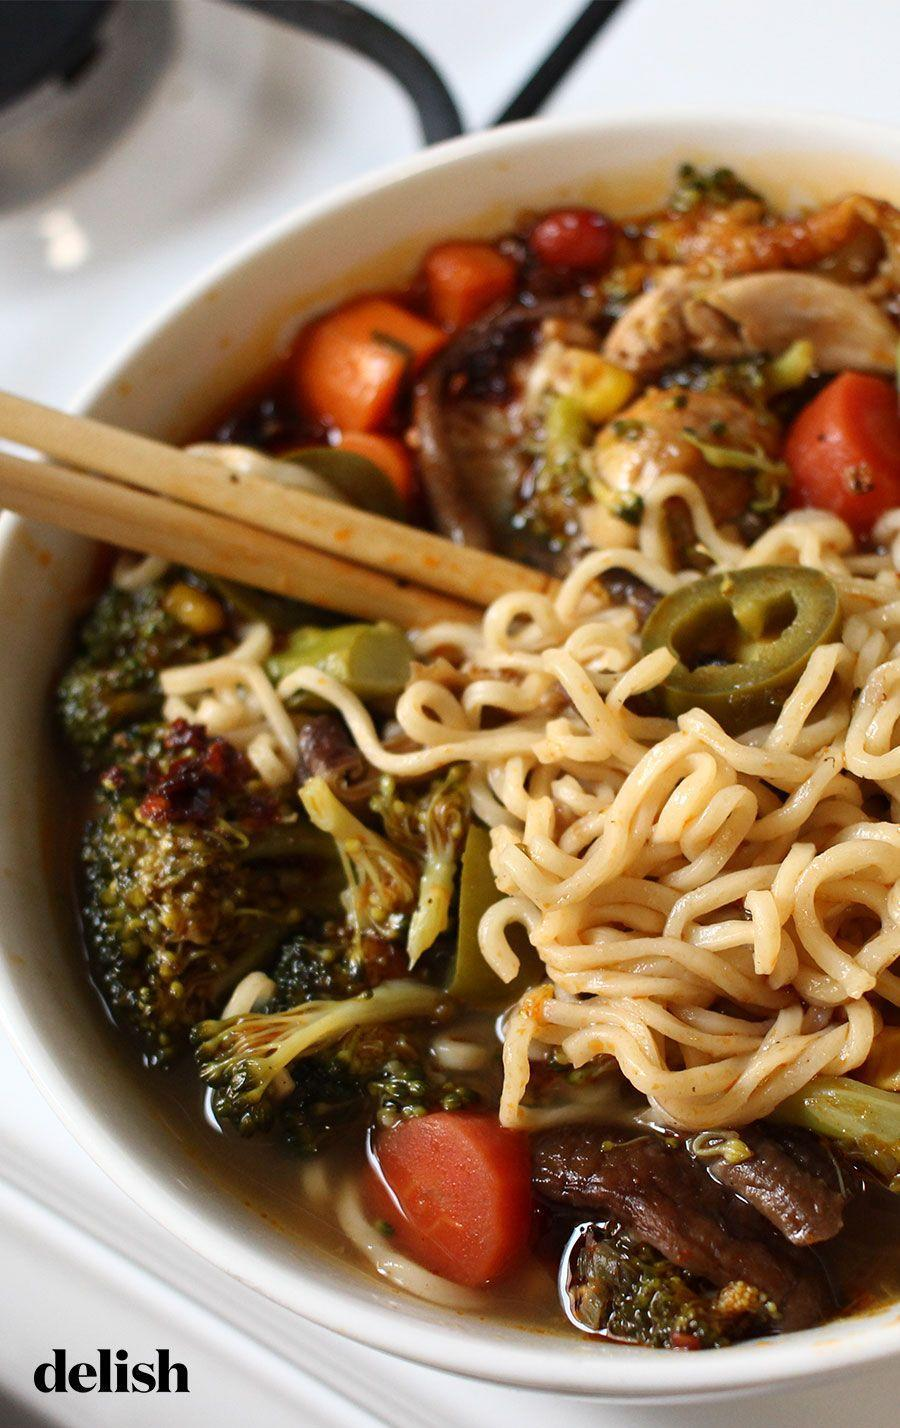 """<p>Use whatever you have!</p><p>Get the recipe from <a href=""""https://www.delish.com/cooking/recipe-ideas/a31915077/everything-is-optional-chicken-noodle-soup-recipe/"""" rel=""""nofollow noopener"""" target=""""_blank"""" data-ylk=""""slk:Delish."""" class=""""link rapid-noclick-resp"""">Delish.</a></p>"""